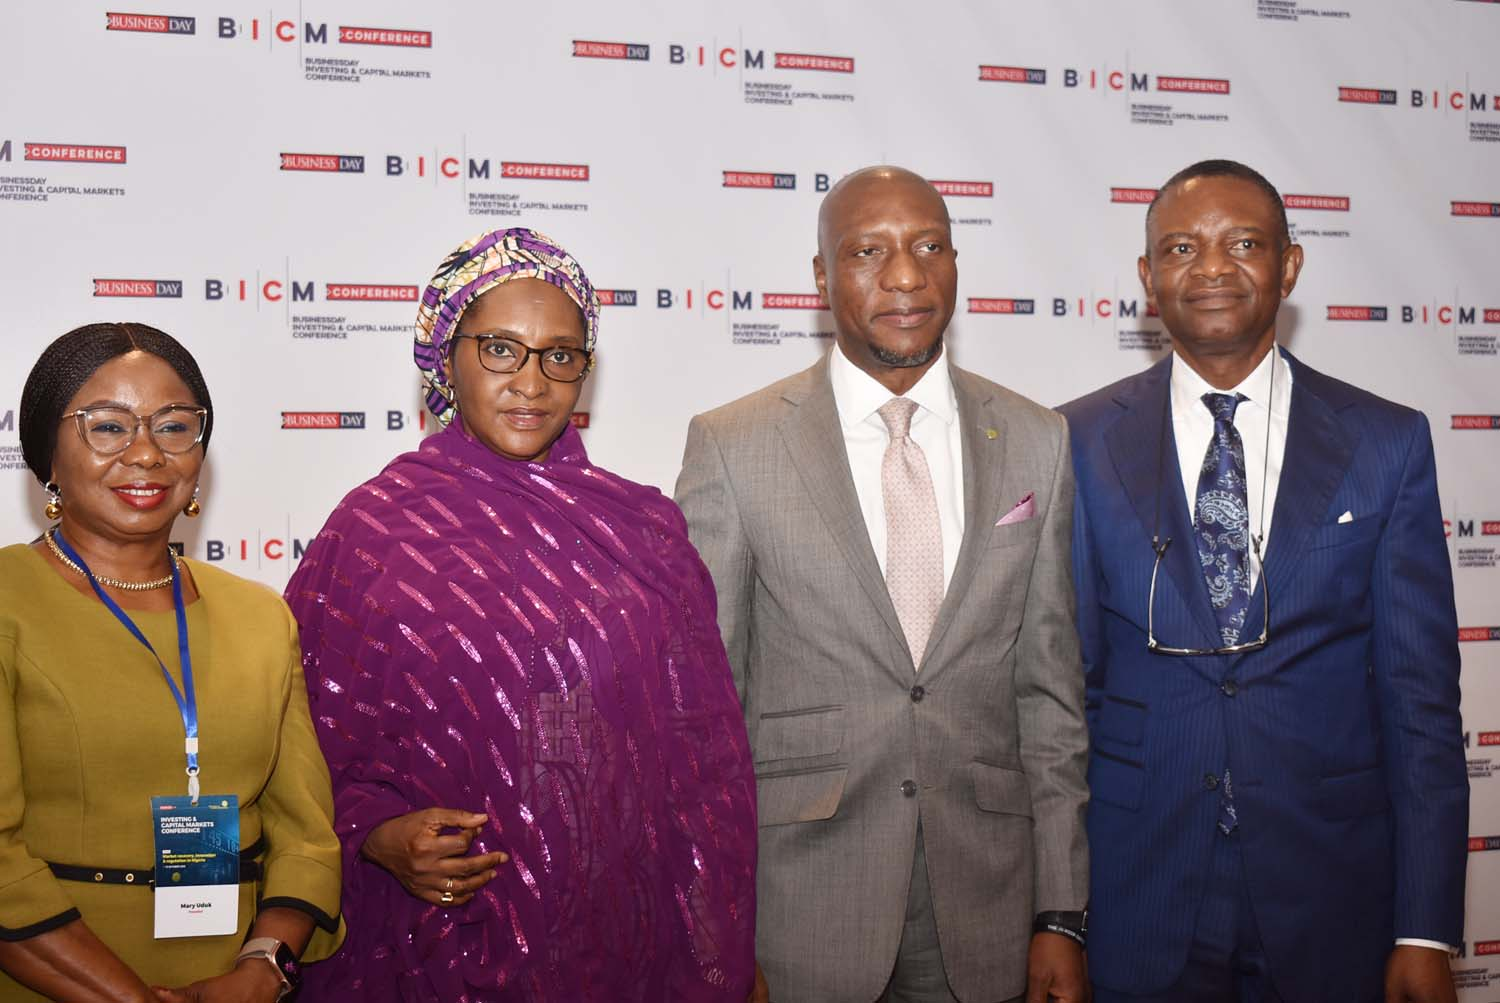 L-R,  Acting Director General, Securities and Exchange Commission  Ms Mary Uduk, Minister of Finance Hajia Zainab Ahmed, CEO Nigerian Stock Exchange Mr Oscar Onyema and Publisher Business Day Media Mr Frank Aigbogun during the Investing and Capital Markets Conference in Abuja, Thursday